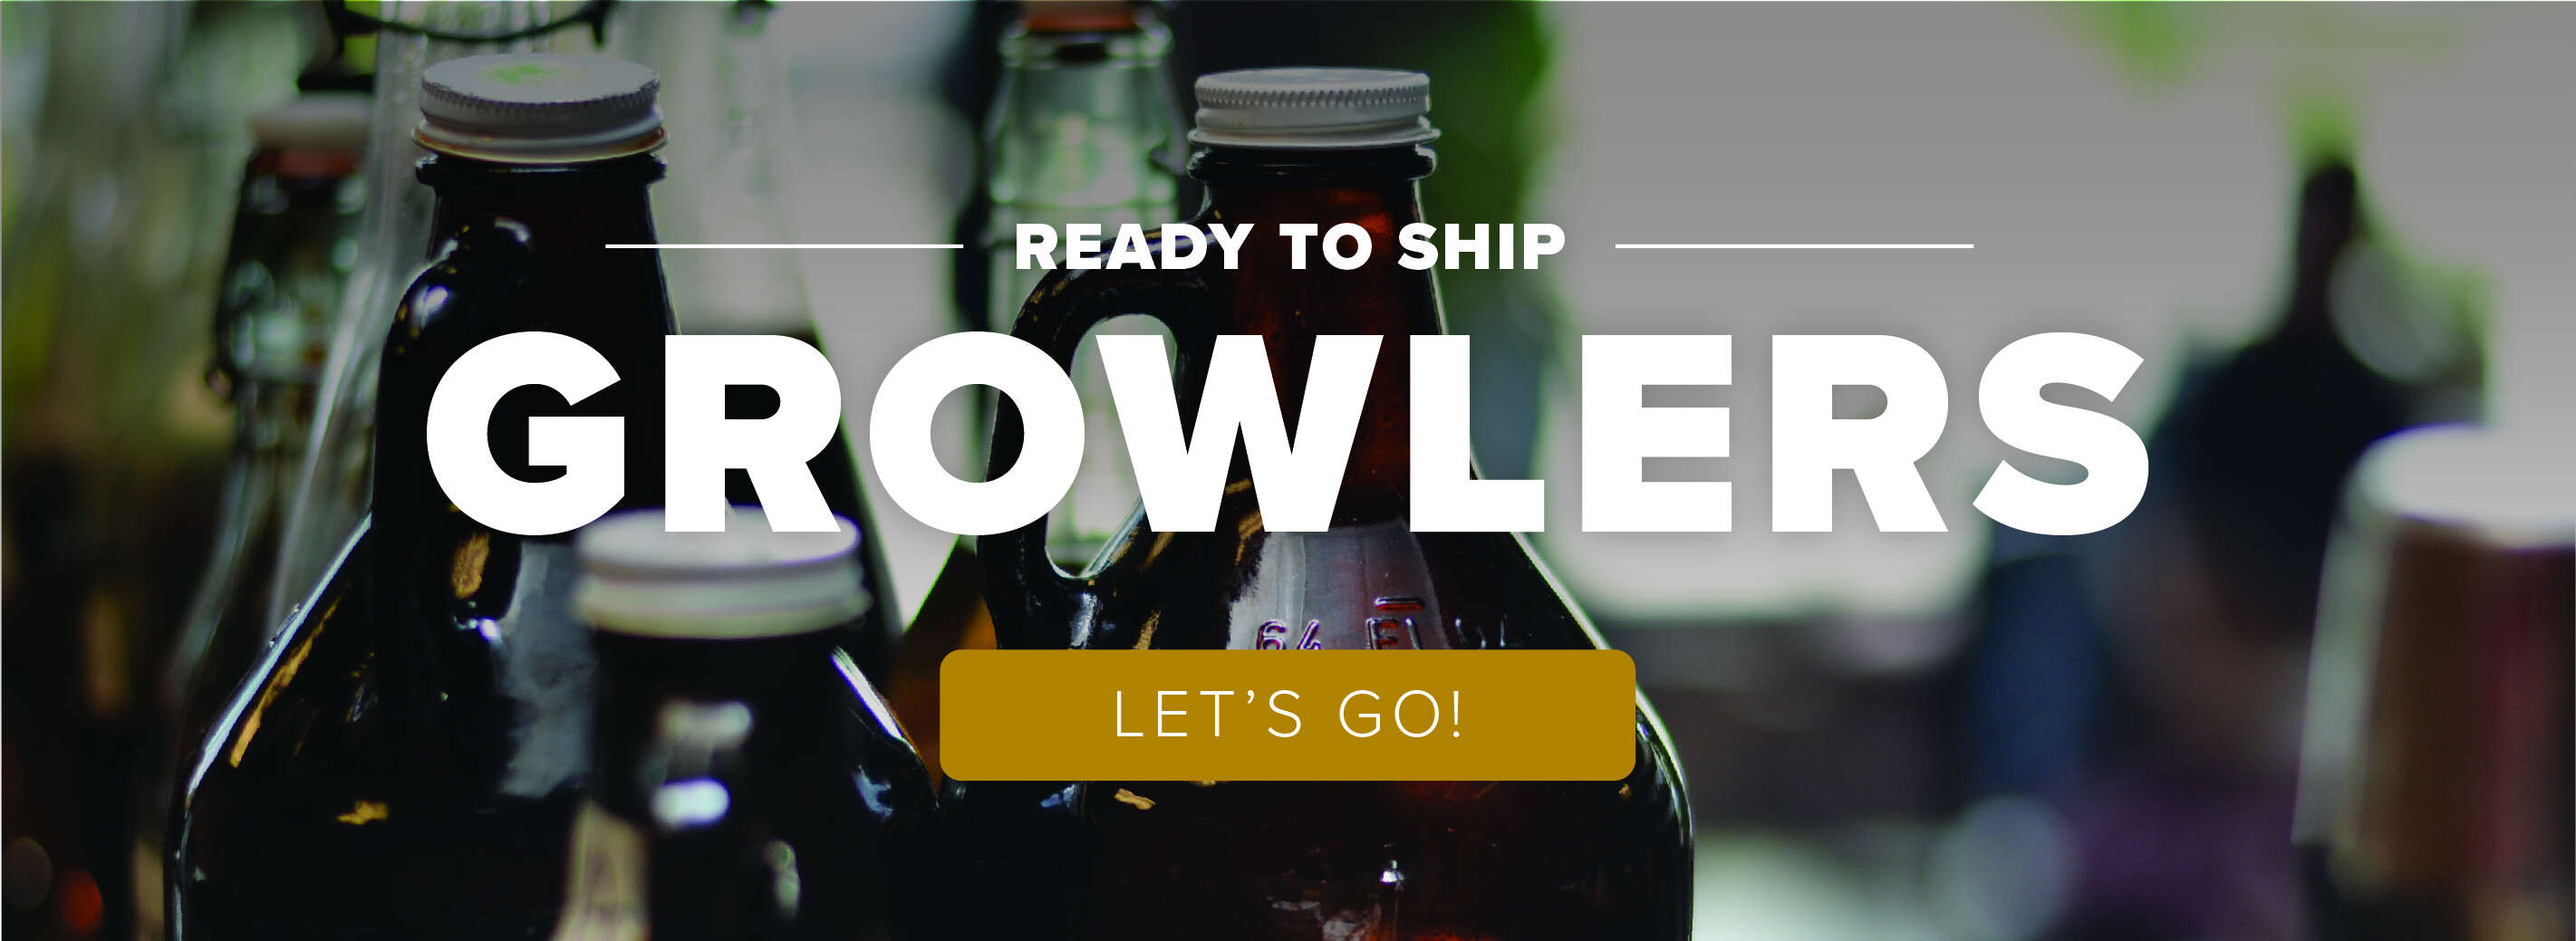 Ready to Ship Growlers